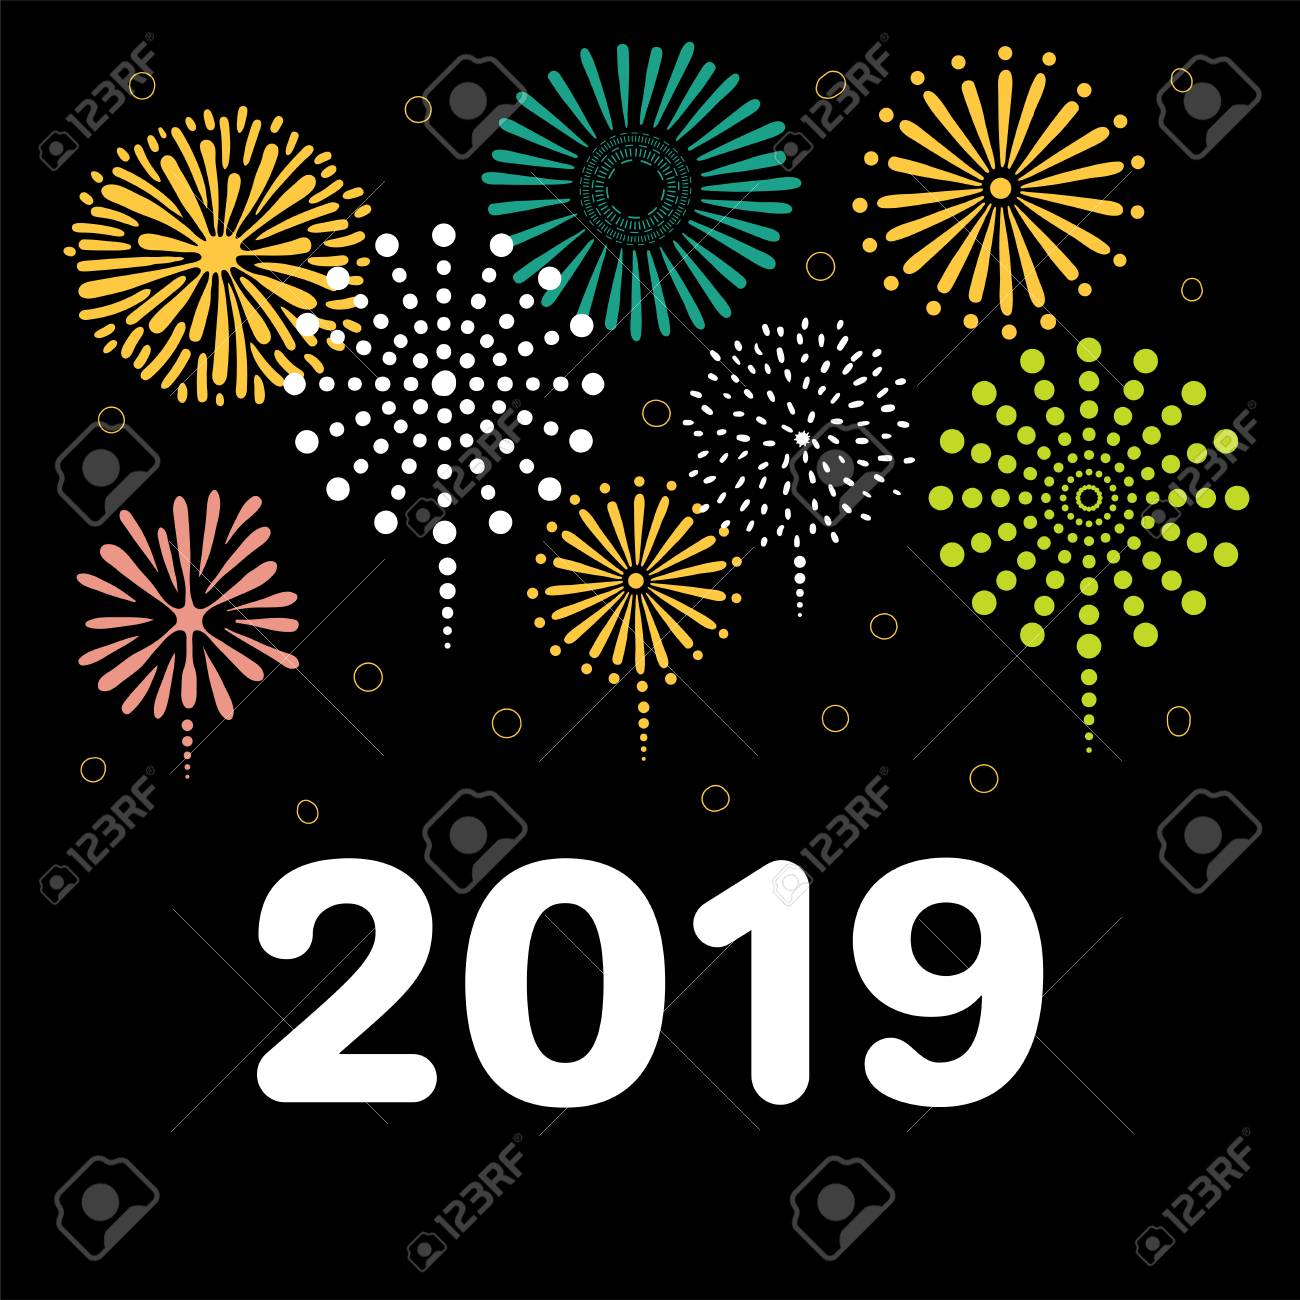 hand drawn new year 2019 greeting card banner template with numbers fireworks isolated